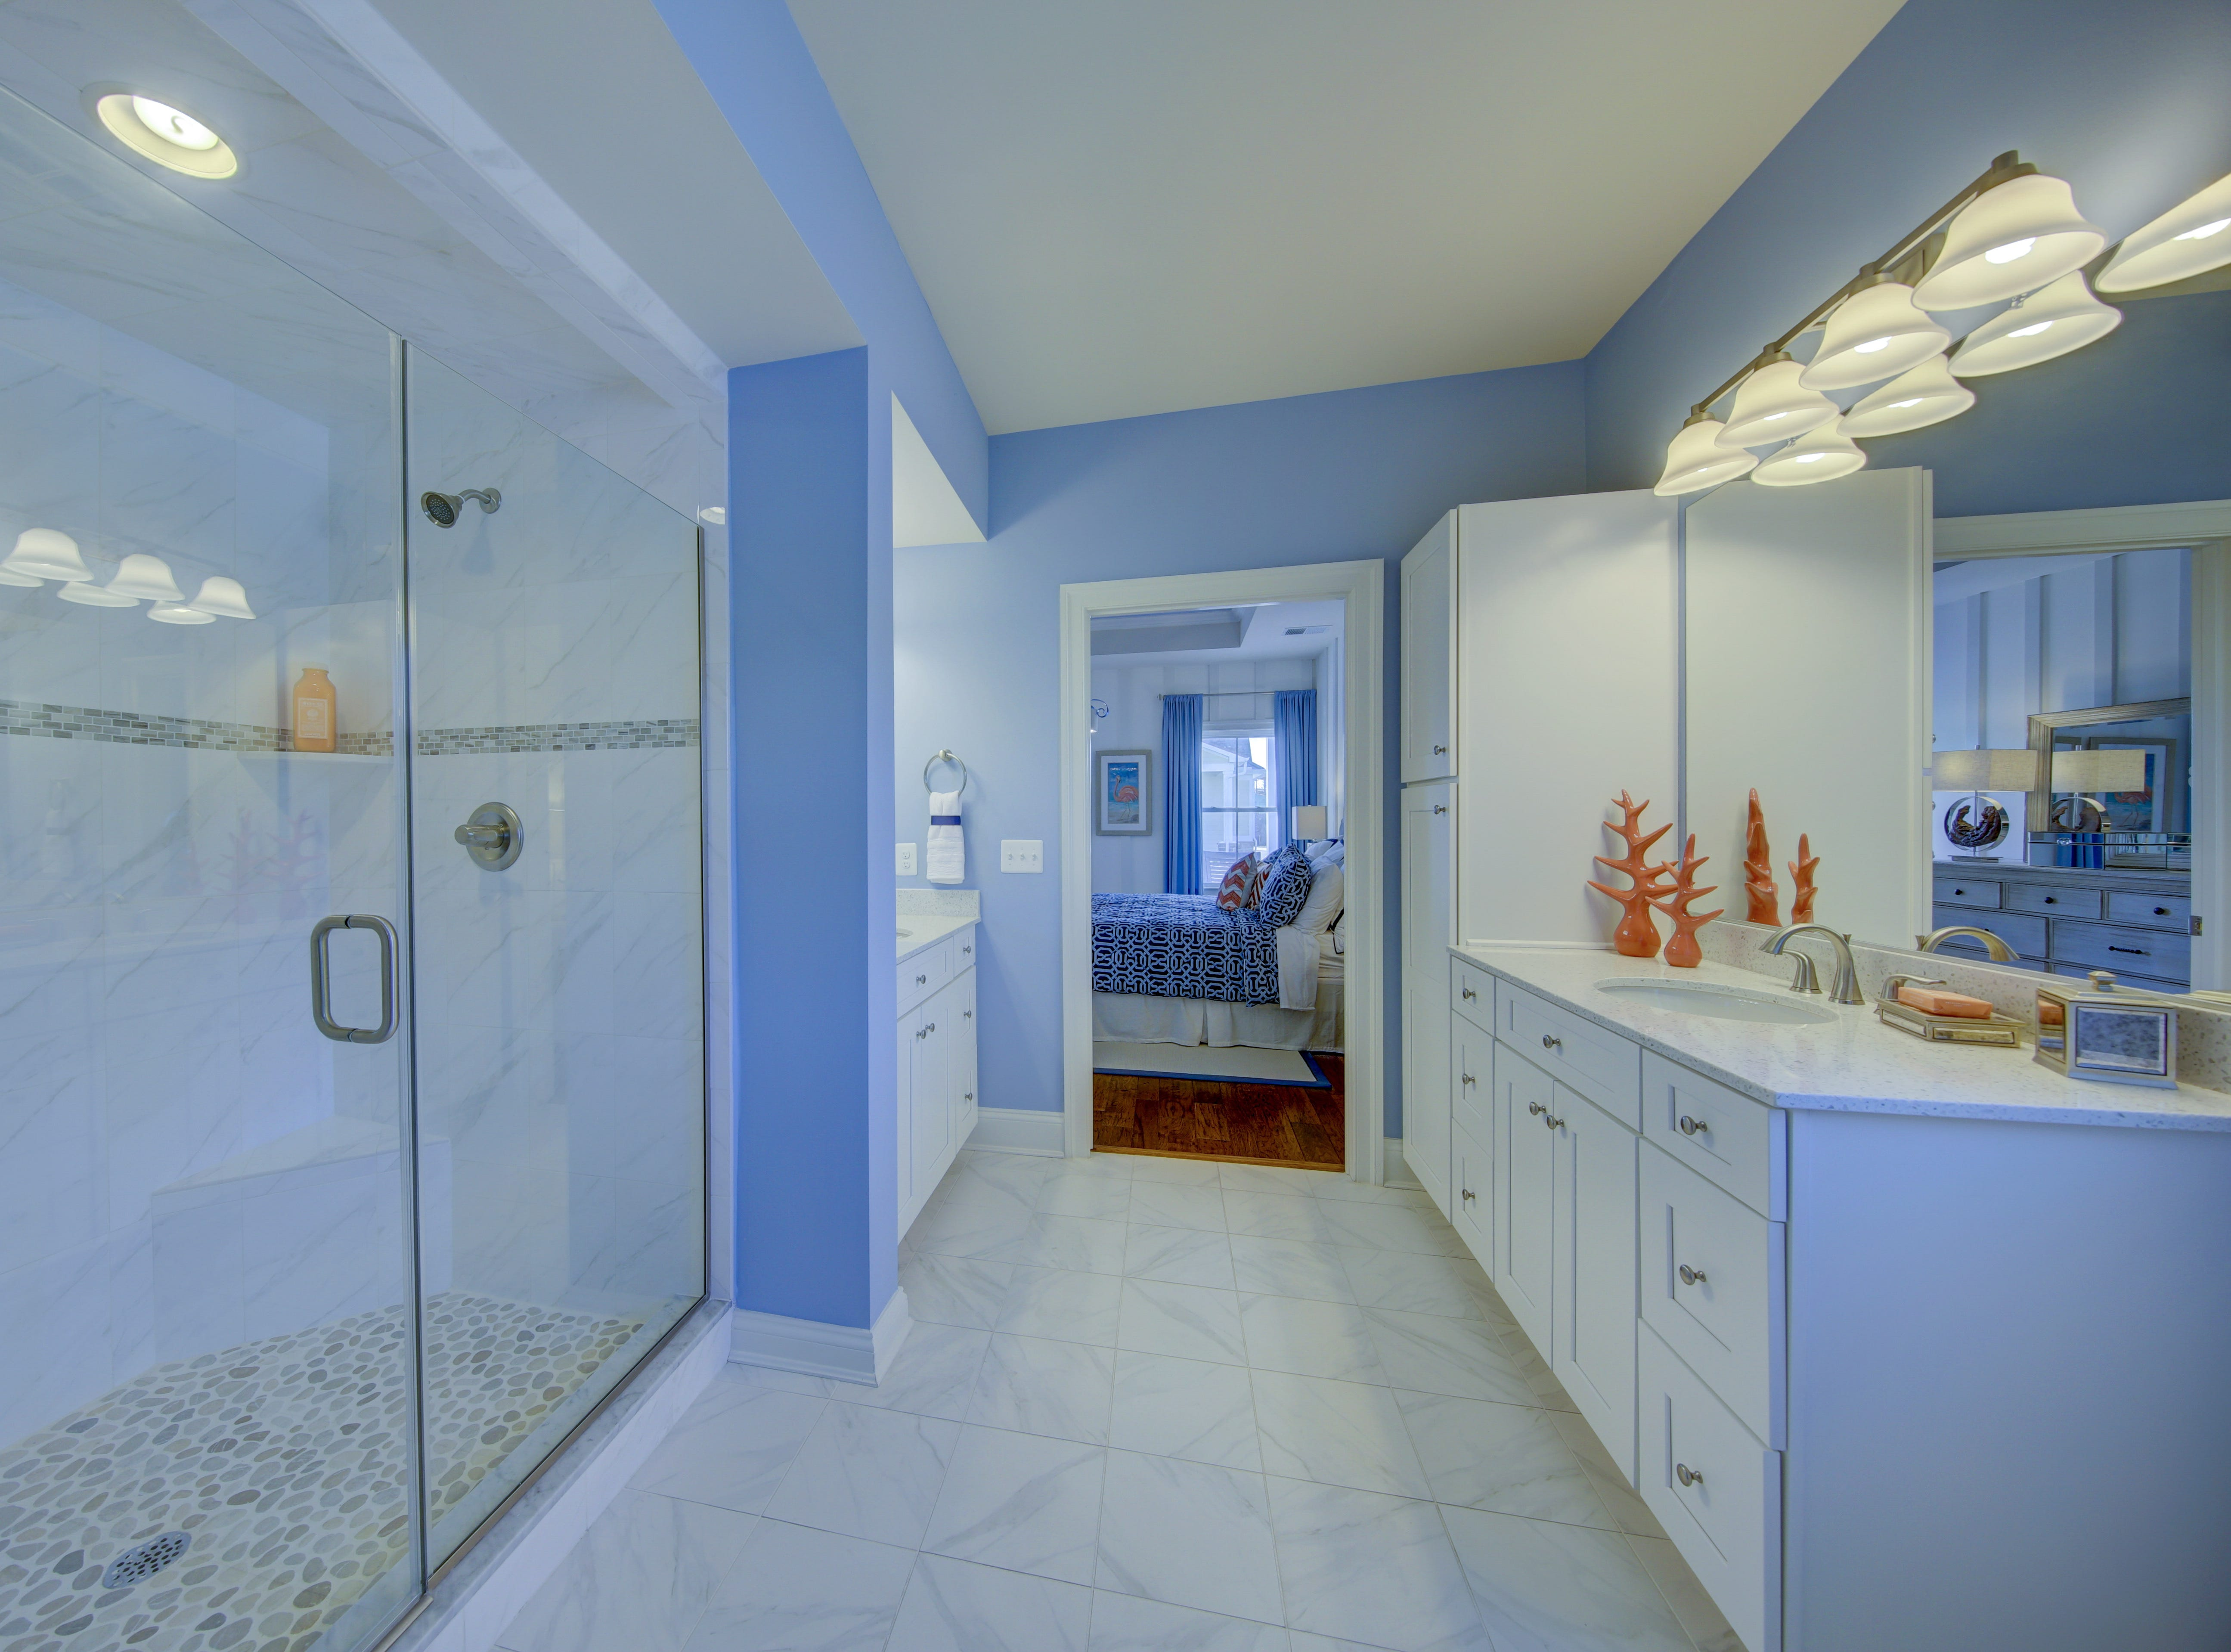 The Overlook's model home in Selbyville has four bathrooms.